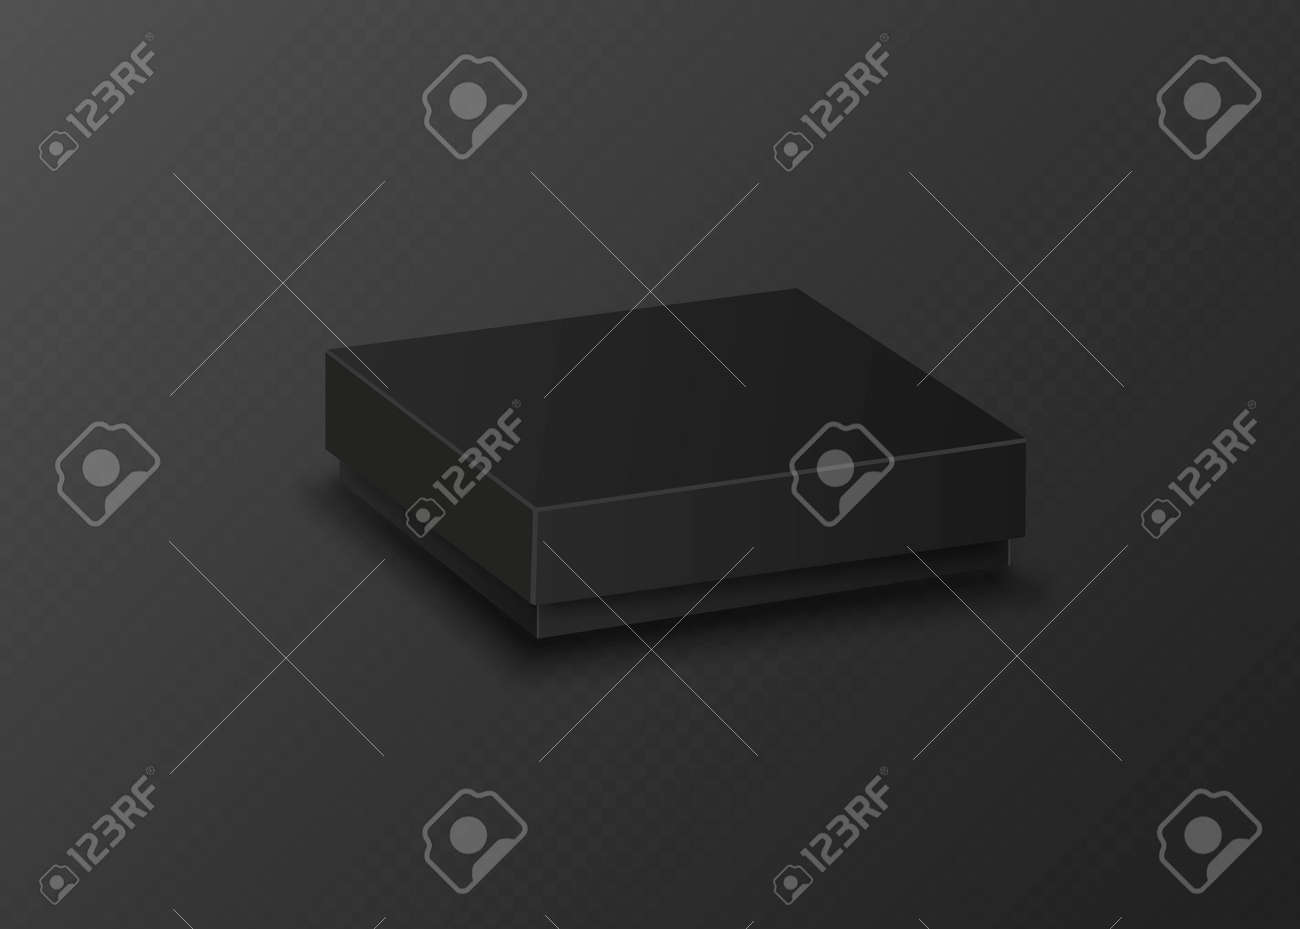 Black empty box on black background. Top view. Template for your presentation design, banner, - 169712006